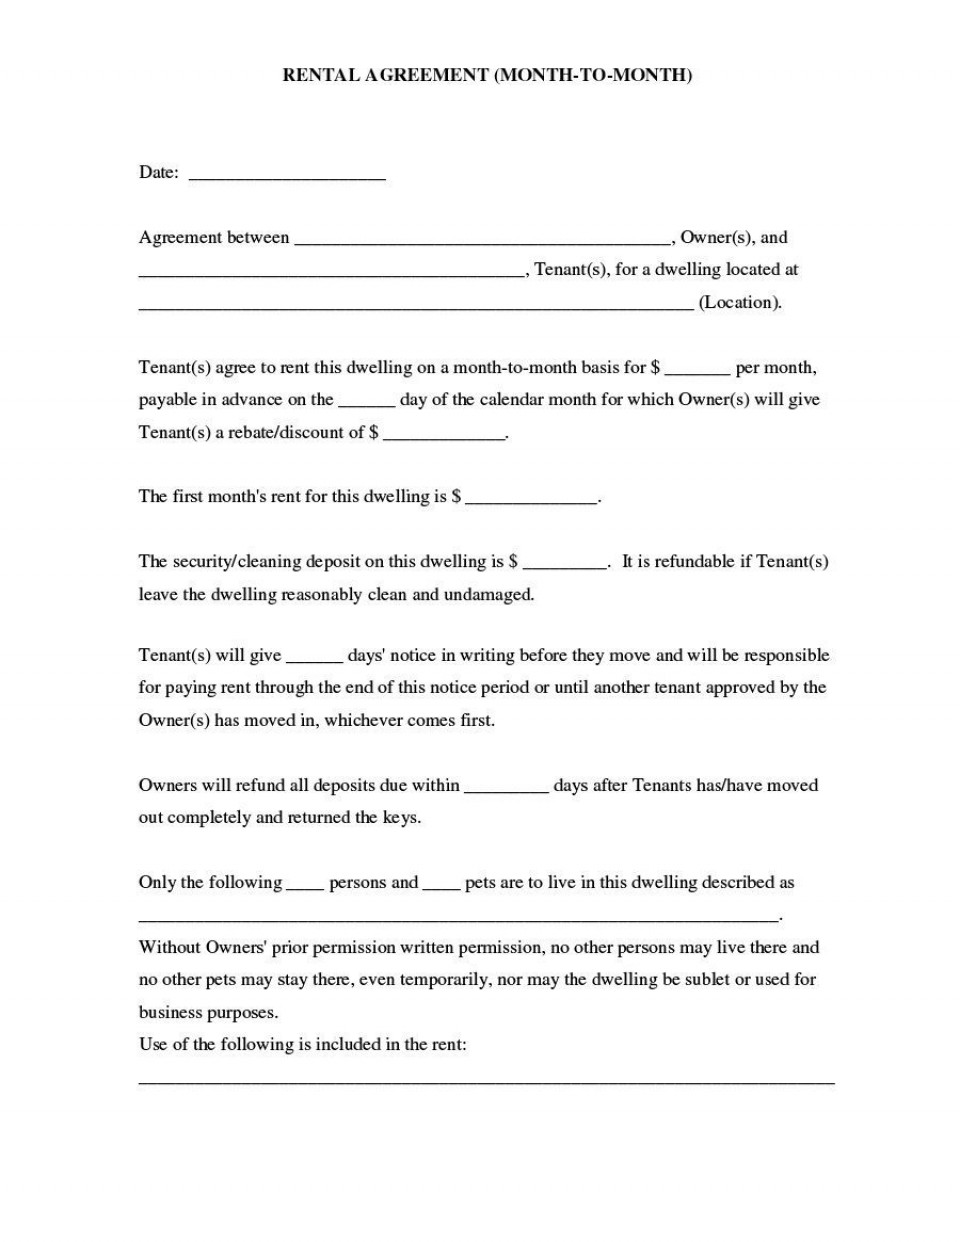 007 Outstanding Housing Rental Agreement Template Free High Resolution 960